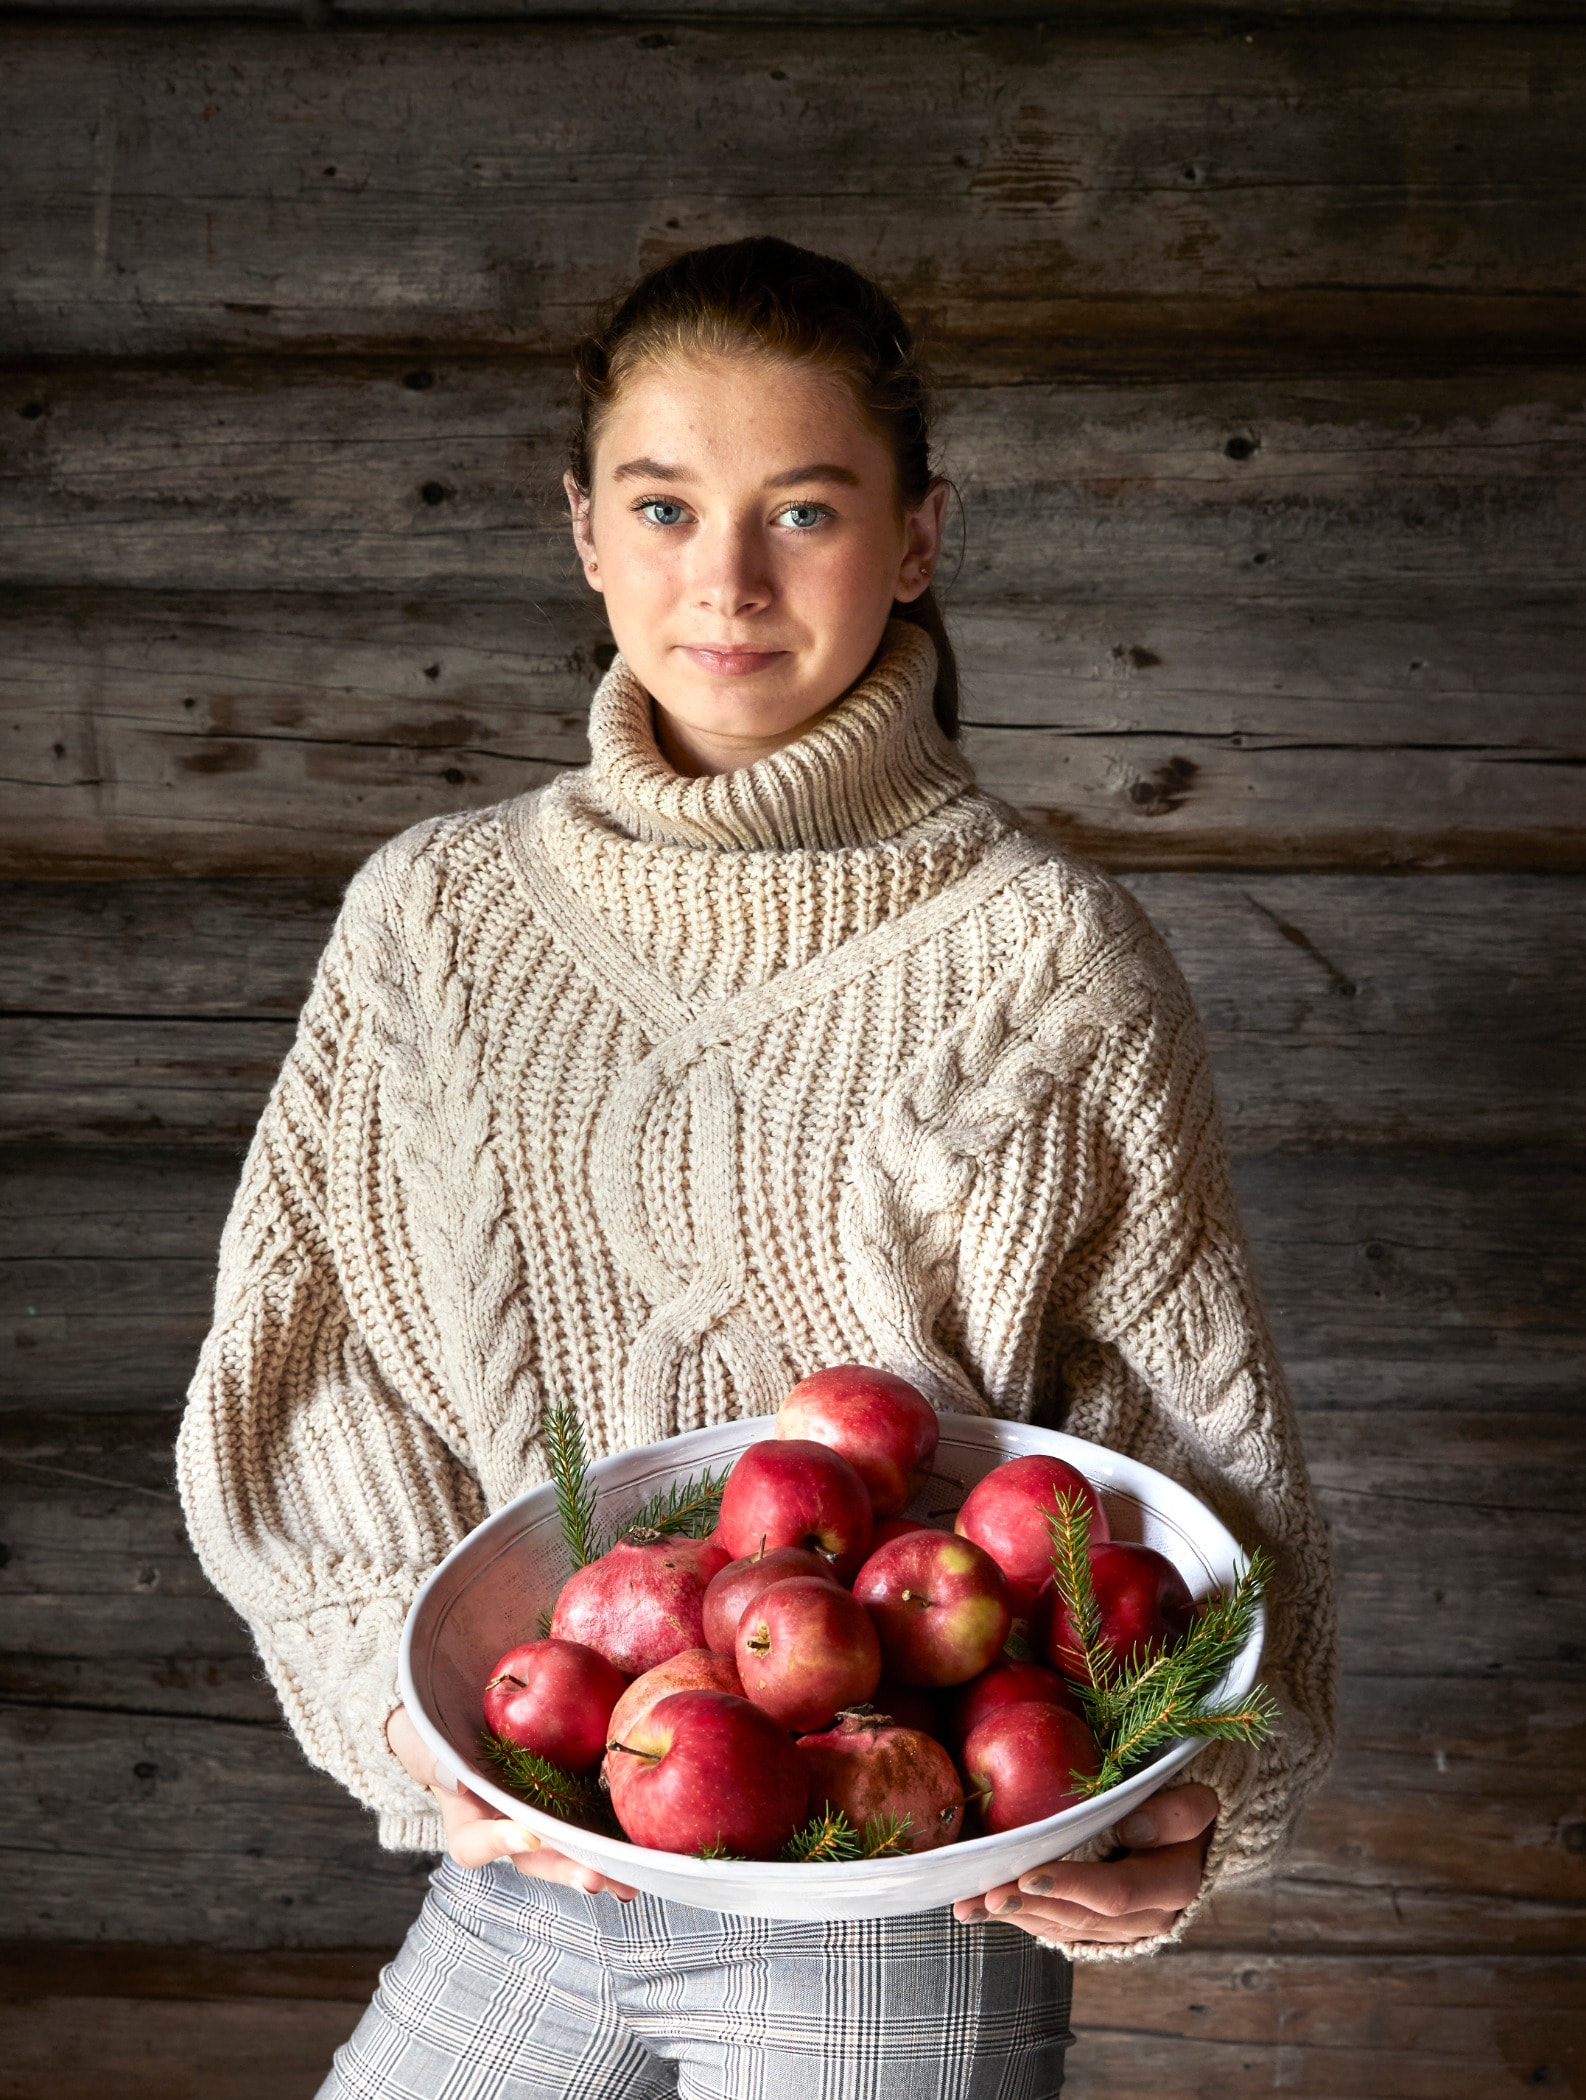 Local food, Natural foods, Plant, Fruit, Apple